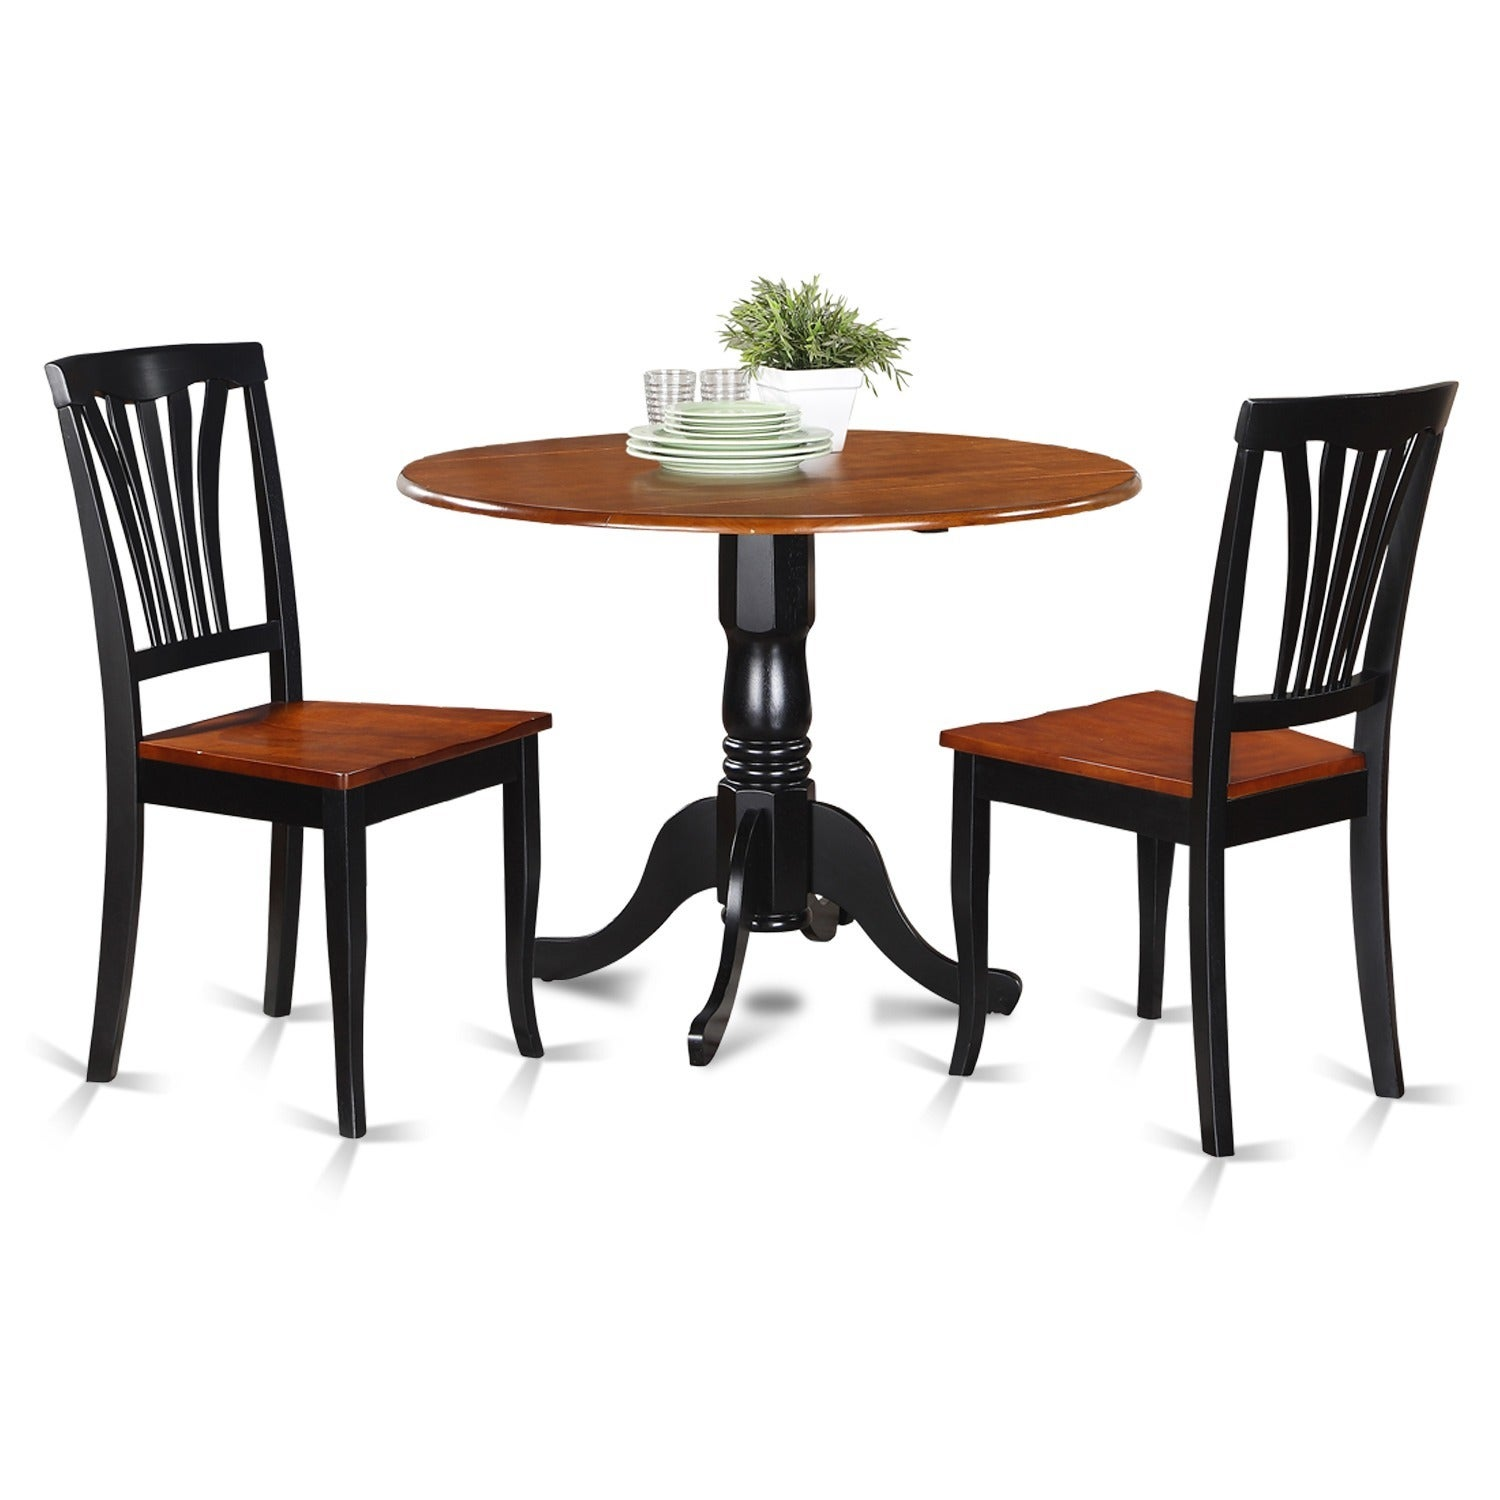 Cherry Kitchen Table And Chairs: Black And Cherry Kitchen Table And 2 Kitchen Chairs Dining